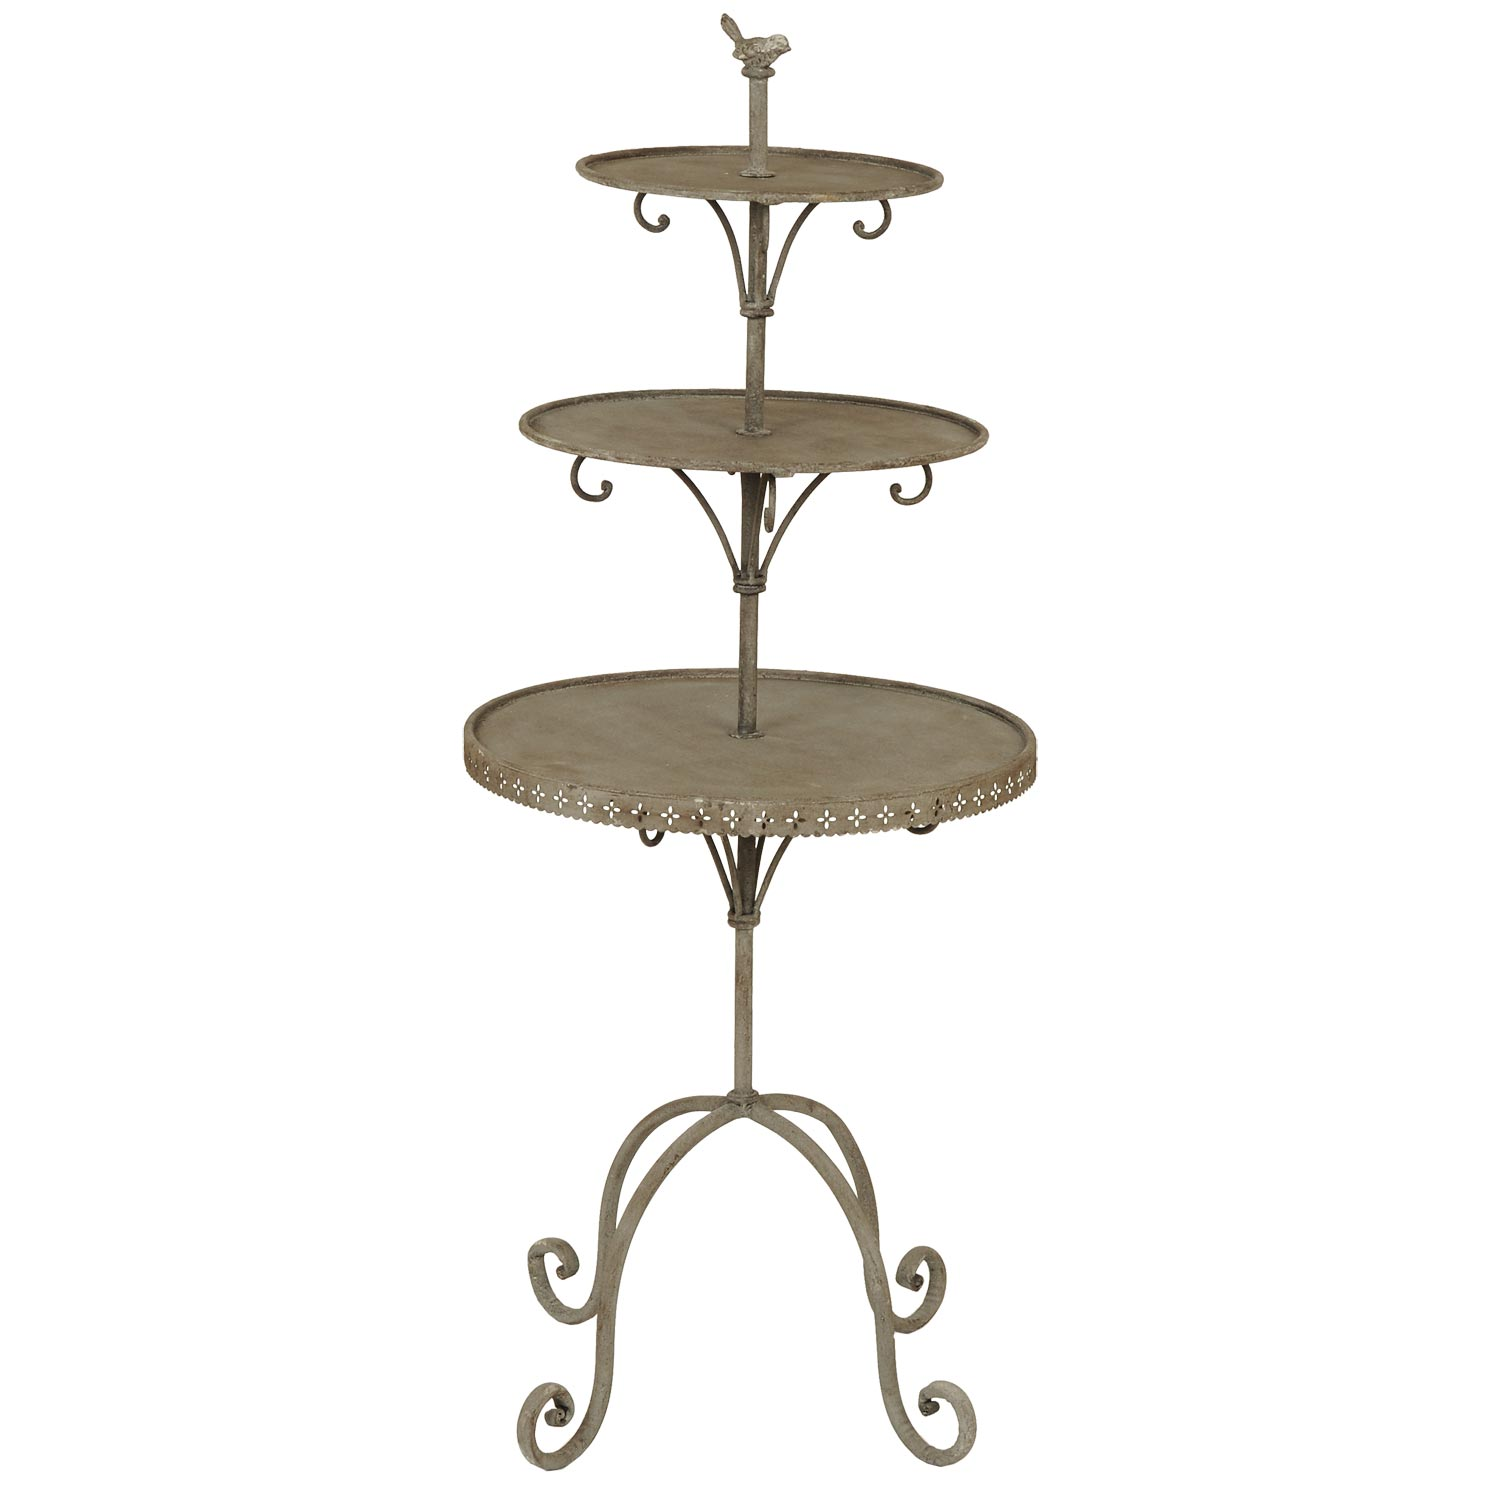 Etagere Englisch Clayre Eef 40605 Etagere Holz Metall 125cm